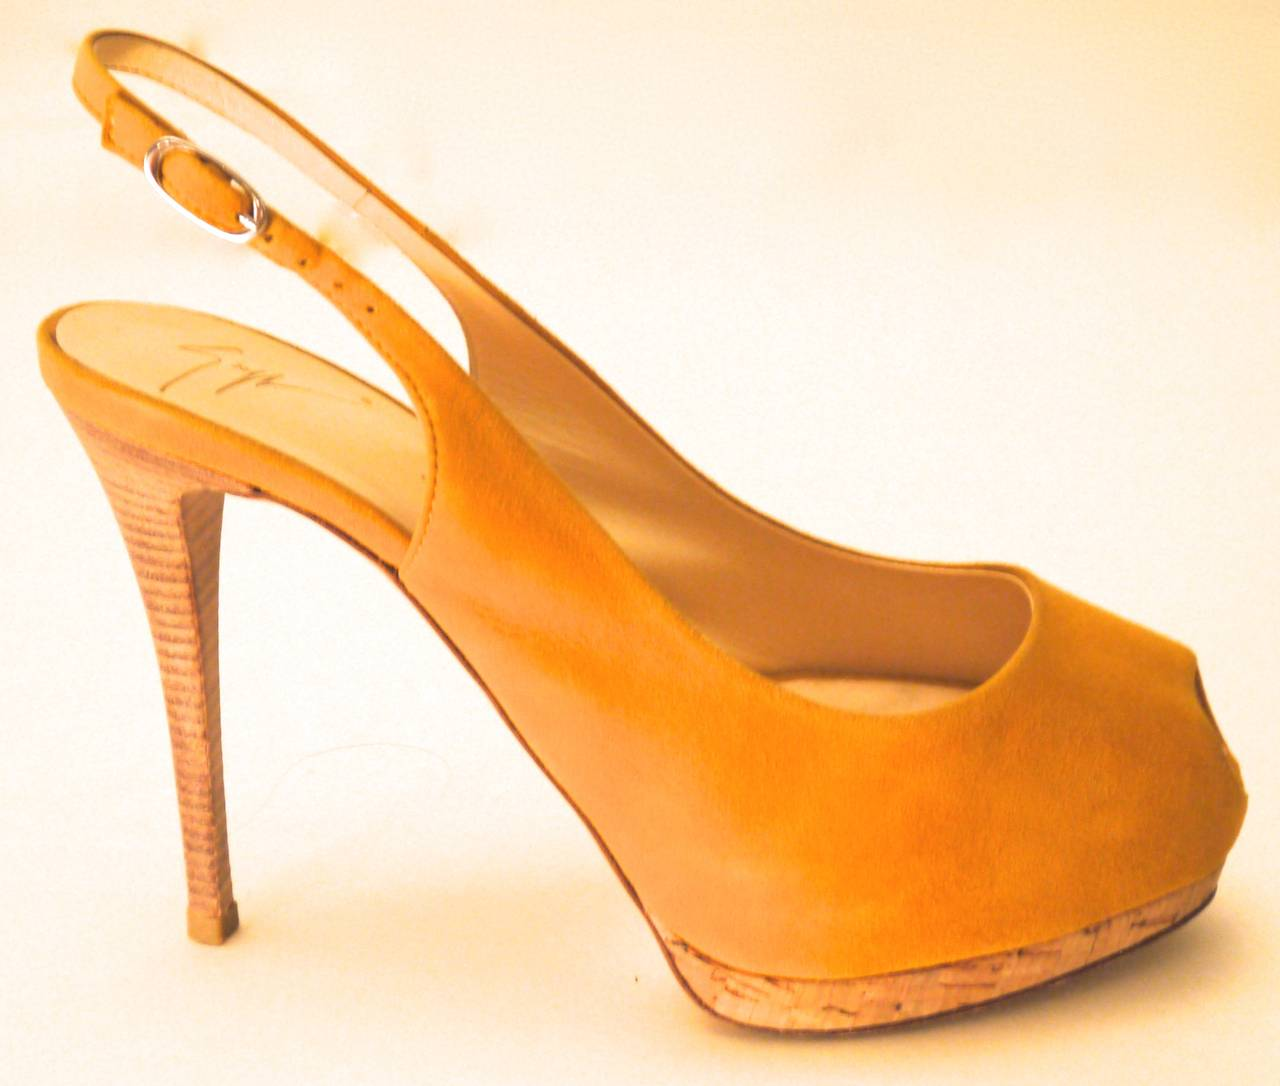 Giuseppe Zanotti Yellow Suede Open Toe Heels with Sling Strap - Size 37 In Excellent Condition For Sale In Boca Raton, FL